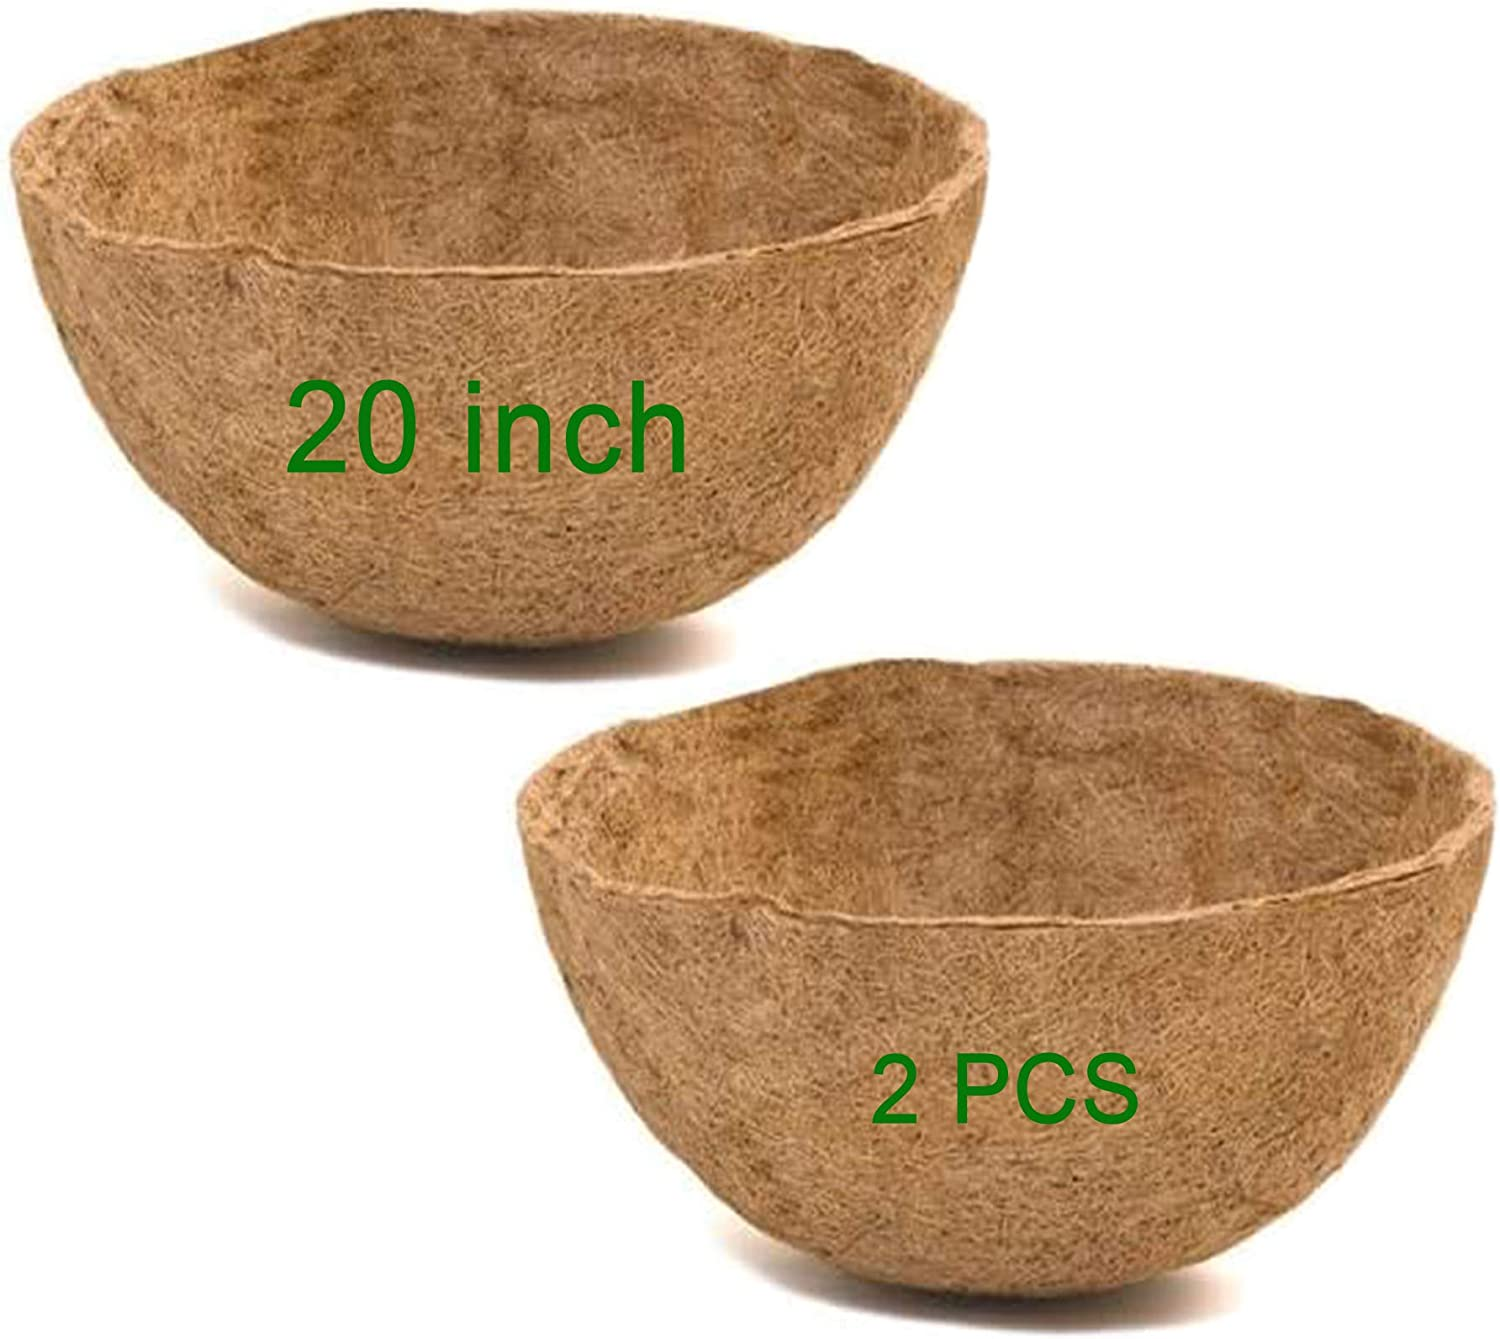 Frillybutts Coco Liners for Planters 20 Inch,2PCS Replacement Coco Fiber Basket Liner for Round Baskets Garden Containers